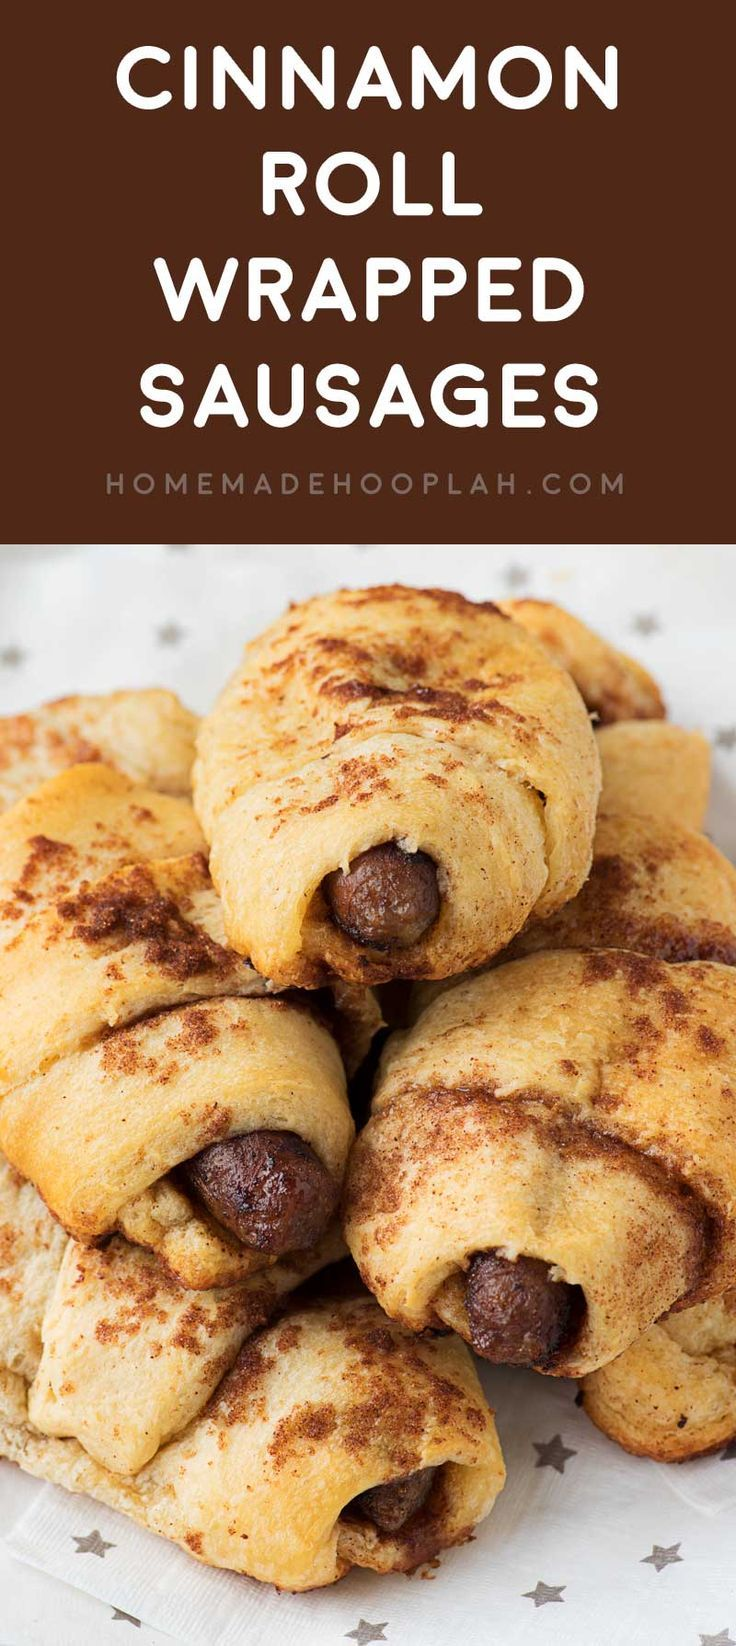 Cinnamon Roll Wrapped Sausages! Breakfast pigs in a blanket with a twist: savory sausage wrapped in a flaky crescent roll and flavored with brown sugar. Perfect for breakfast or brunch! #ad @jvillesausage | HomemadeHooplah.com